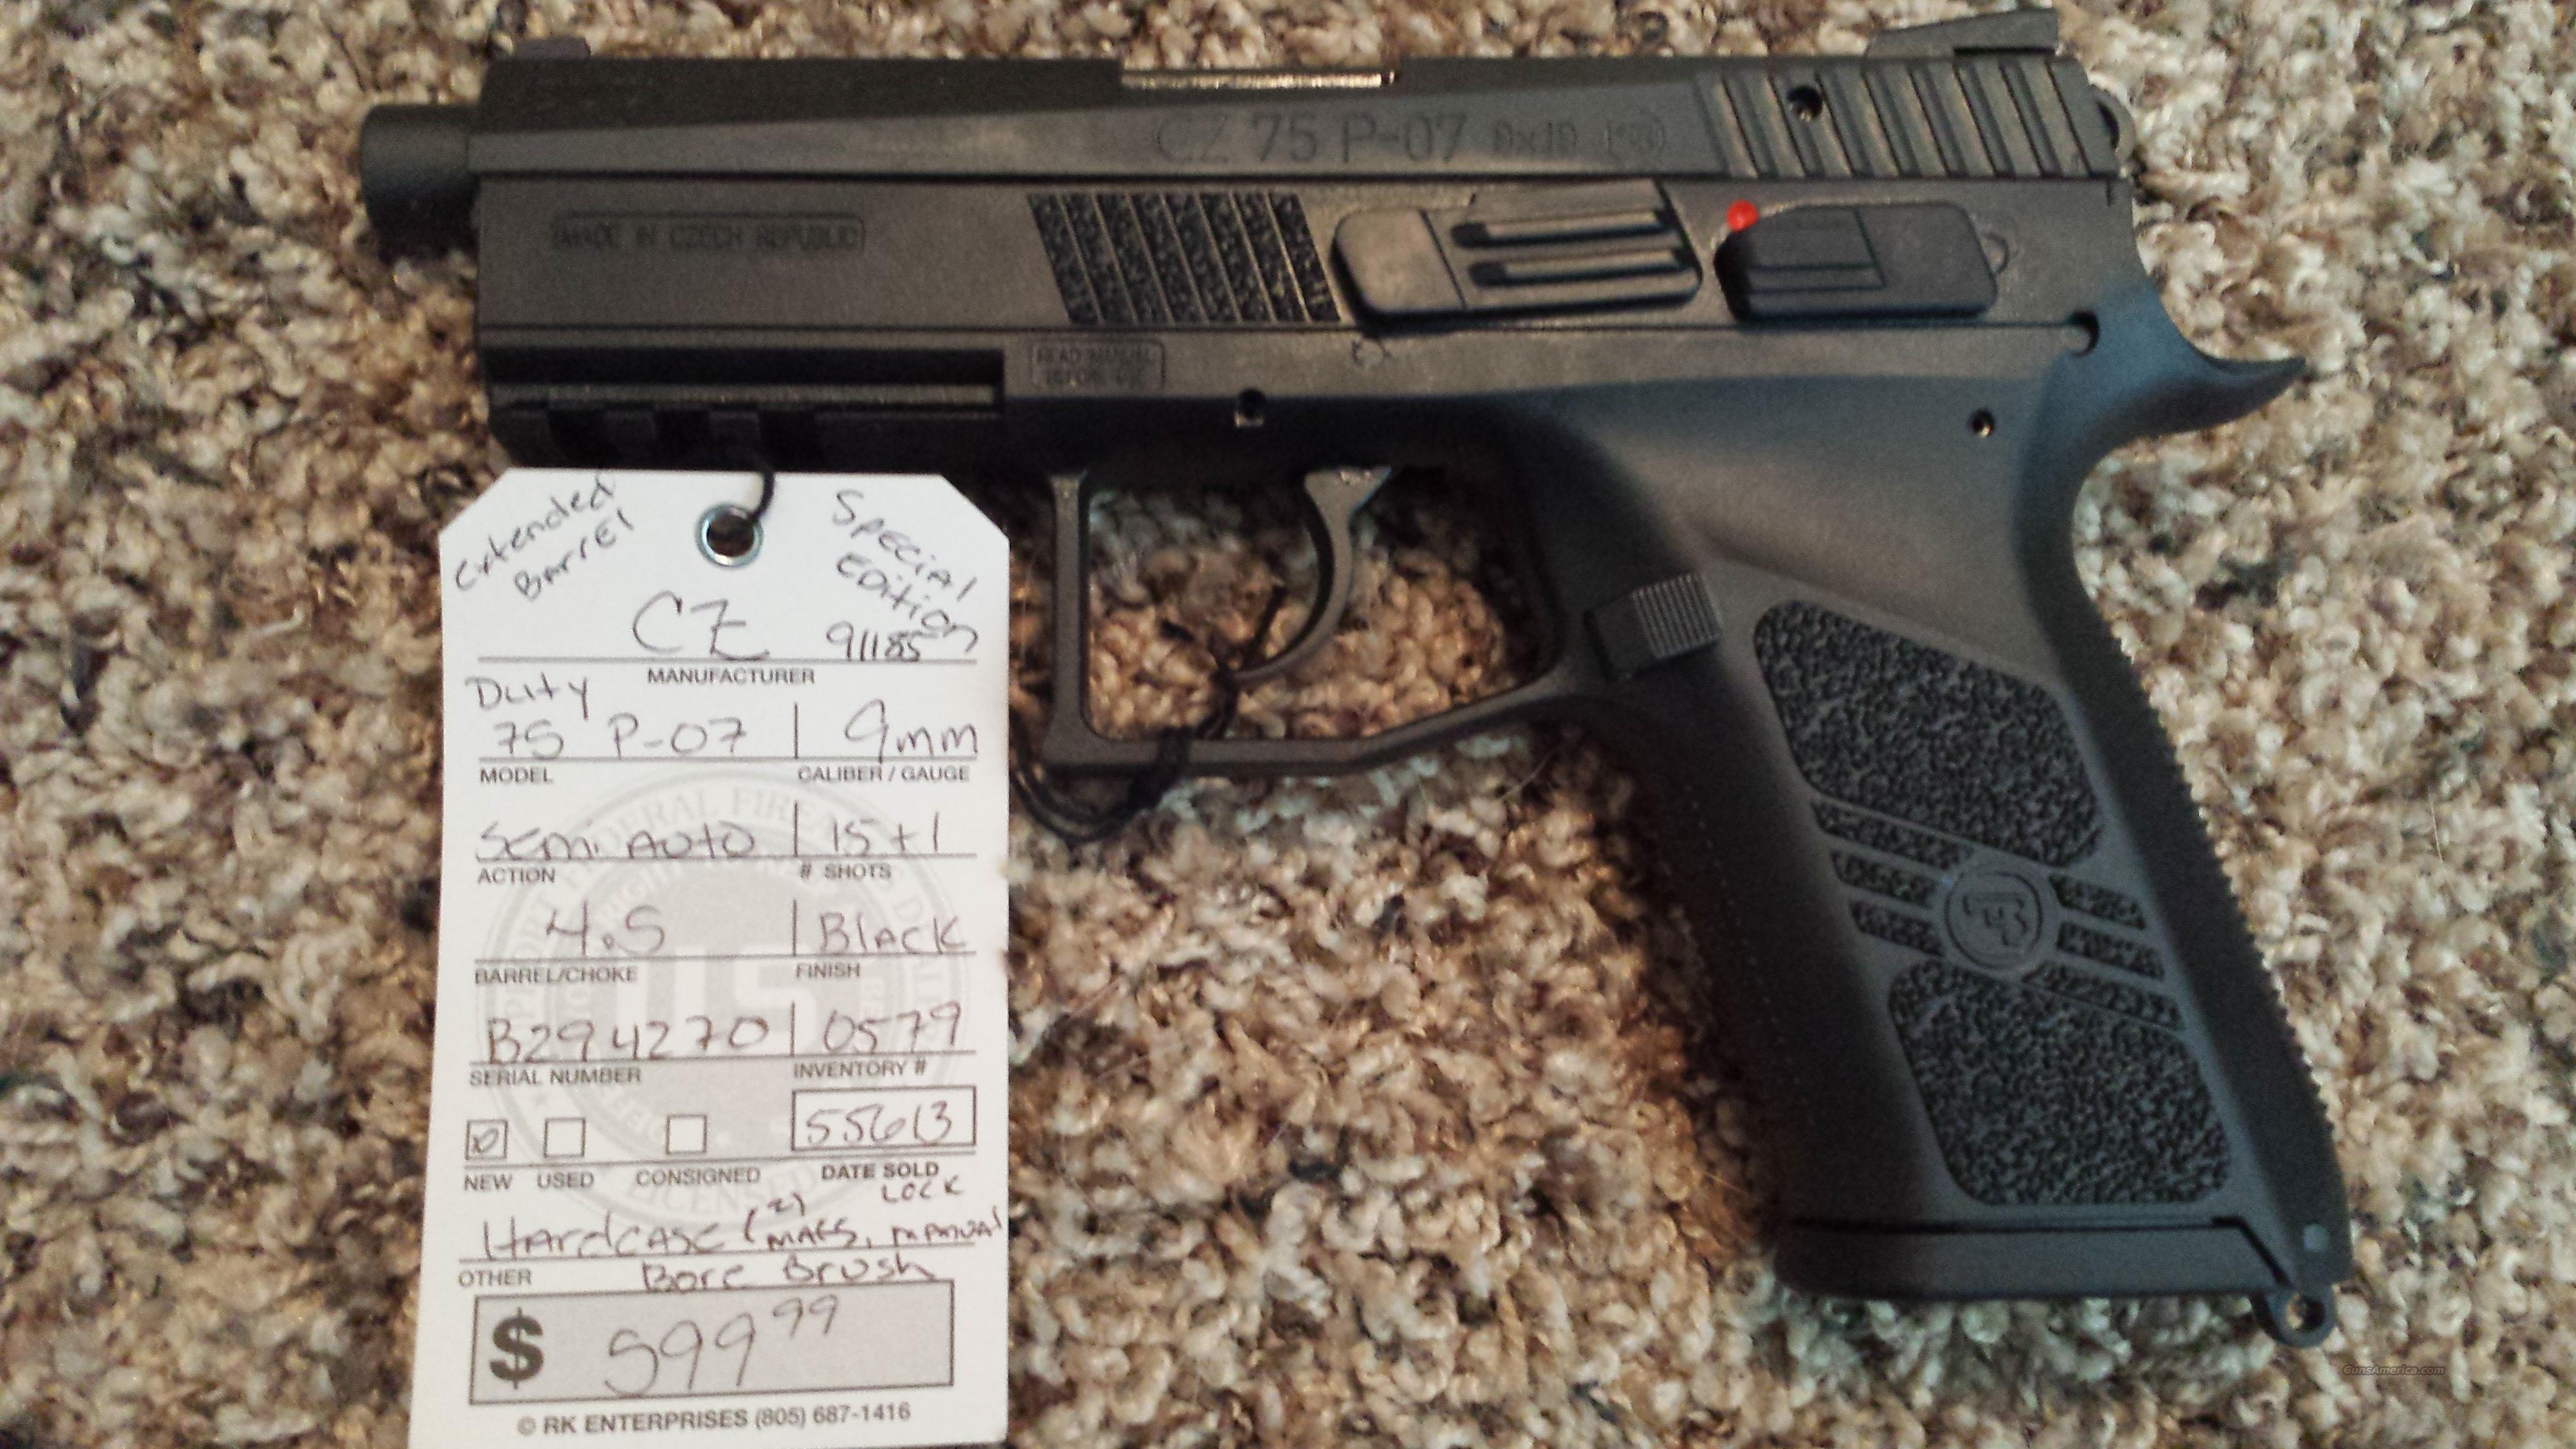 CZ P 07 75 DUTY 9MM 4.5 RARE EXT BARREL 91185  Guns > Pistols > CZ Pistols